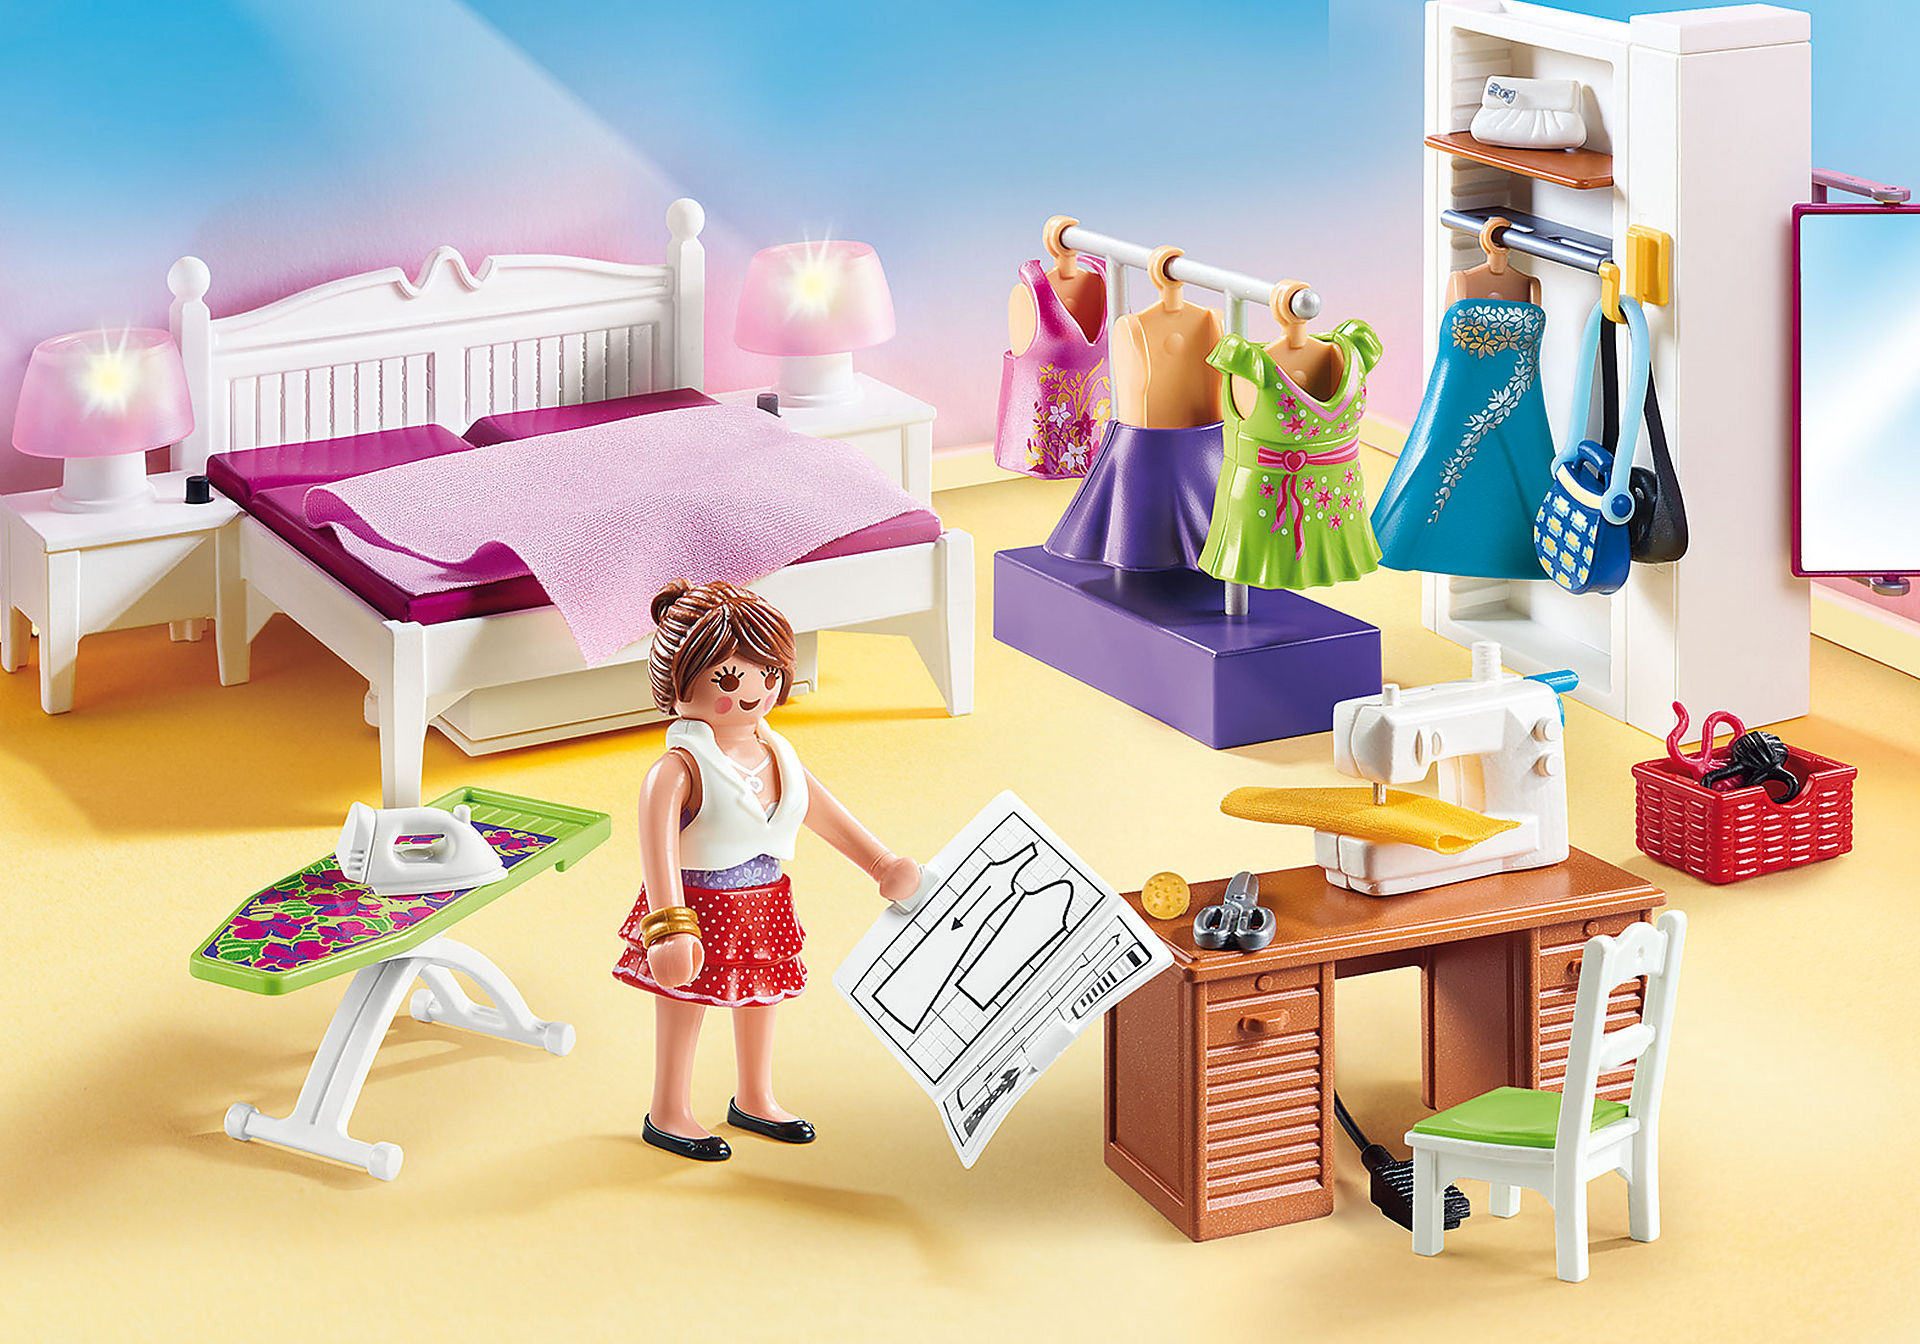 70208 Bedroom with Sewing Corner zoom image1